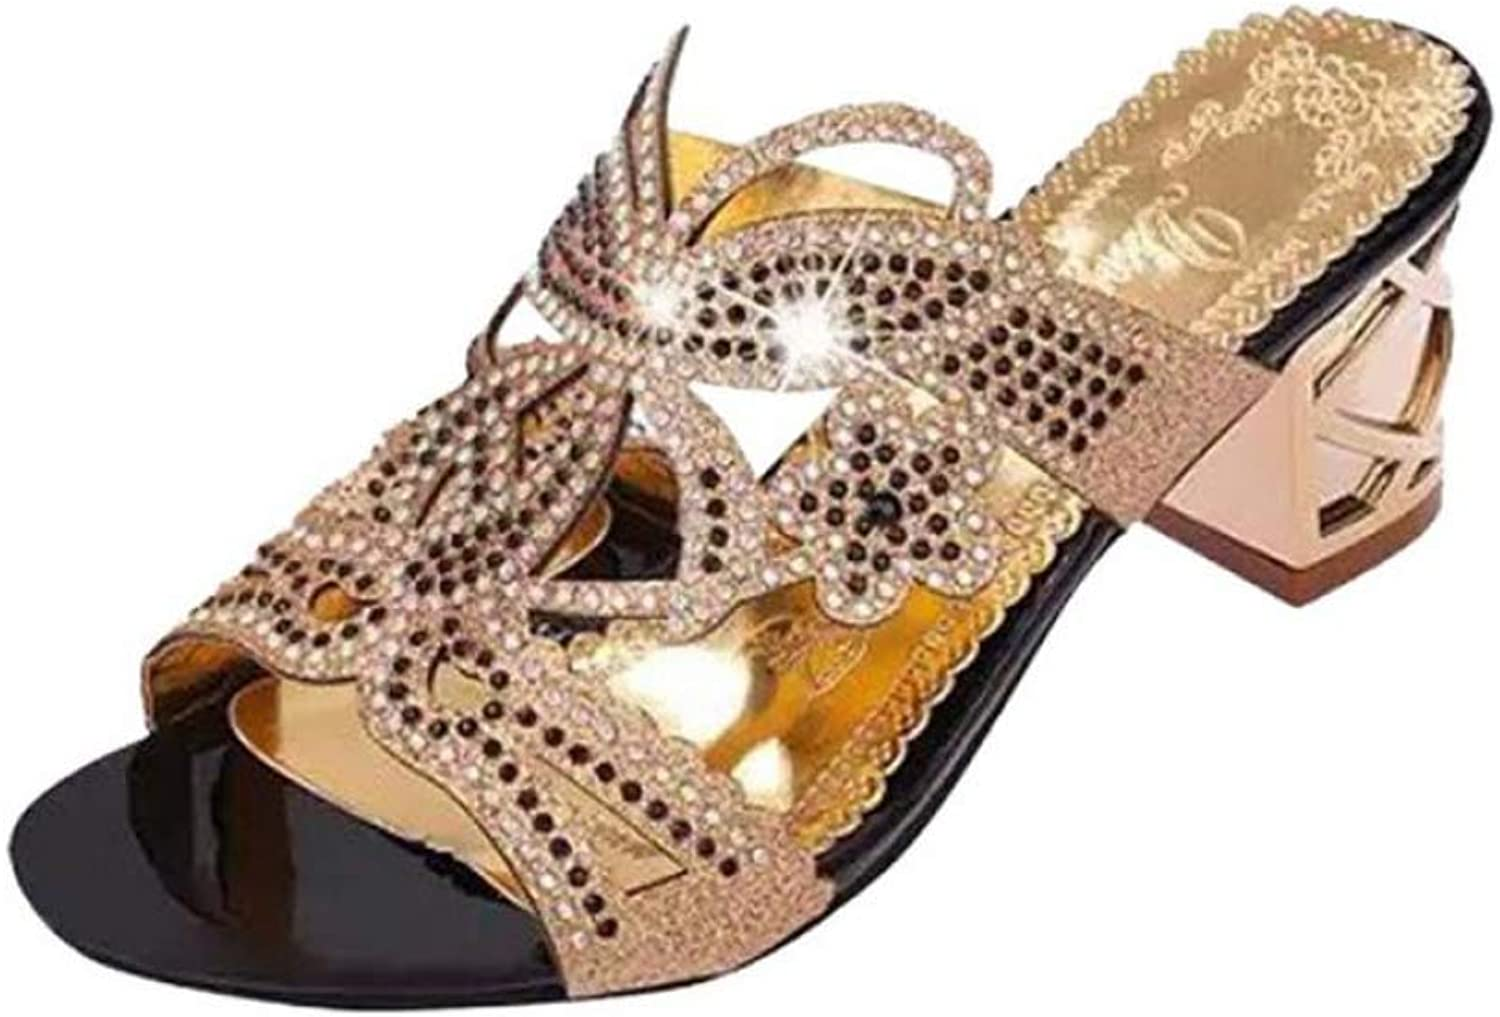 T-JULY Women's Sandal Summer Fashion Comfortable Girl Rhinestone Mid Heel Ladies Sparkling Slipper